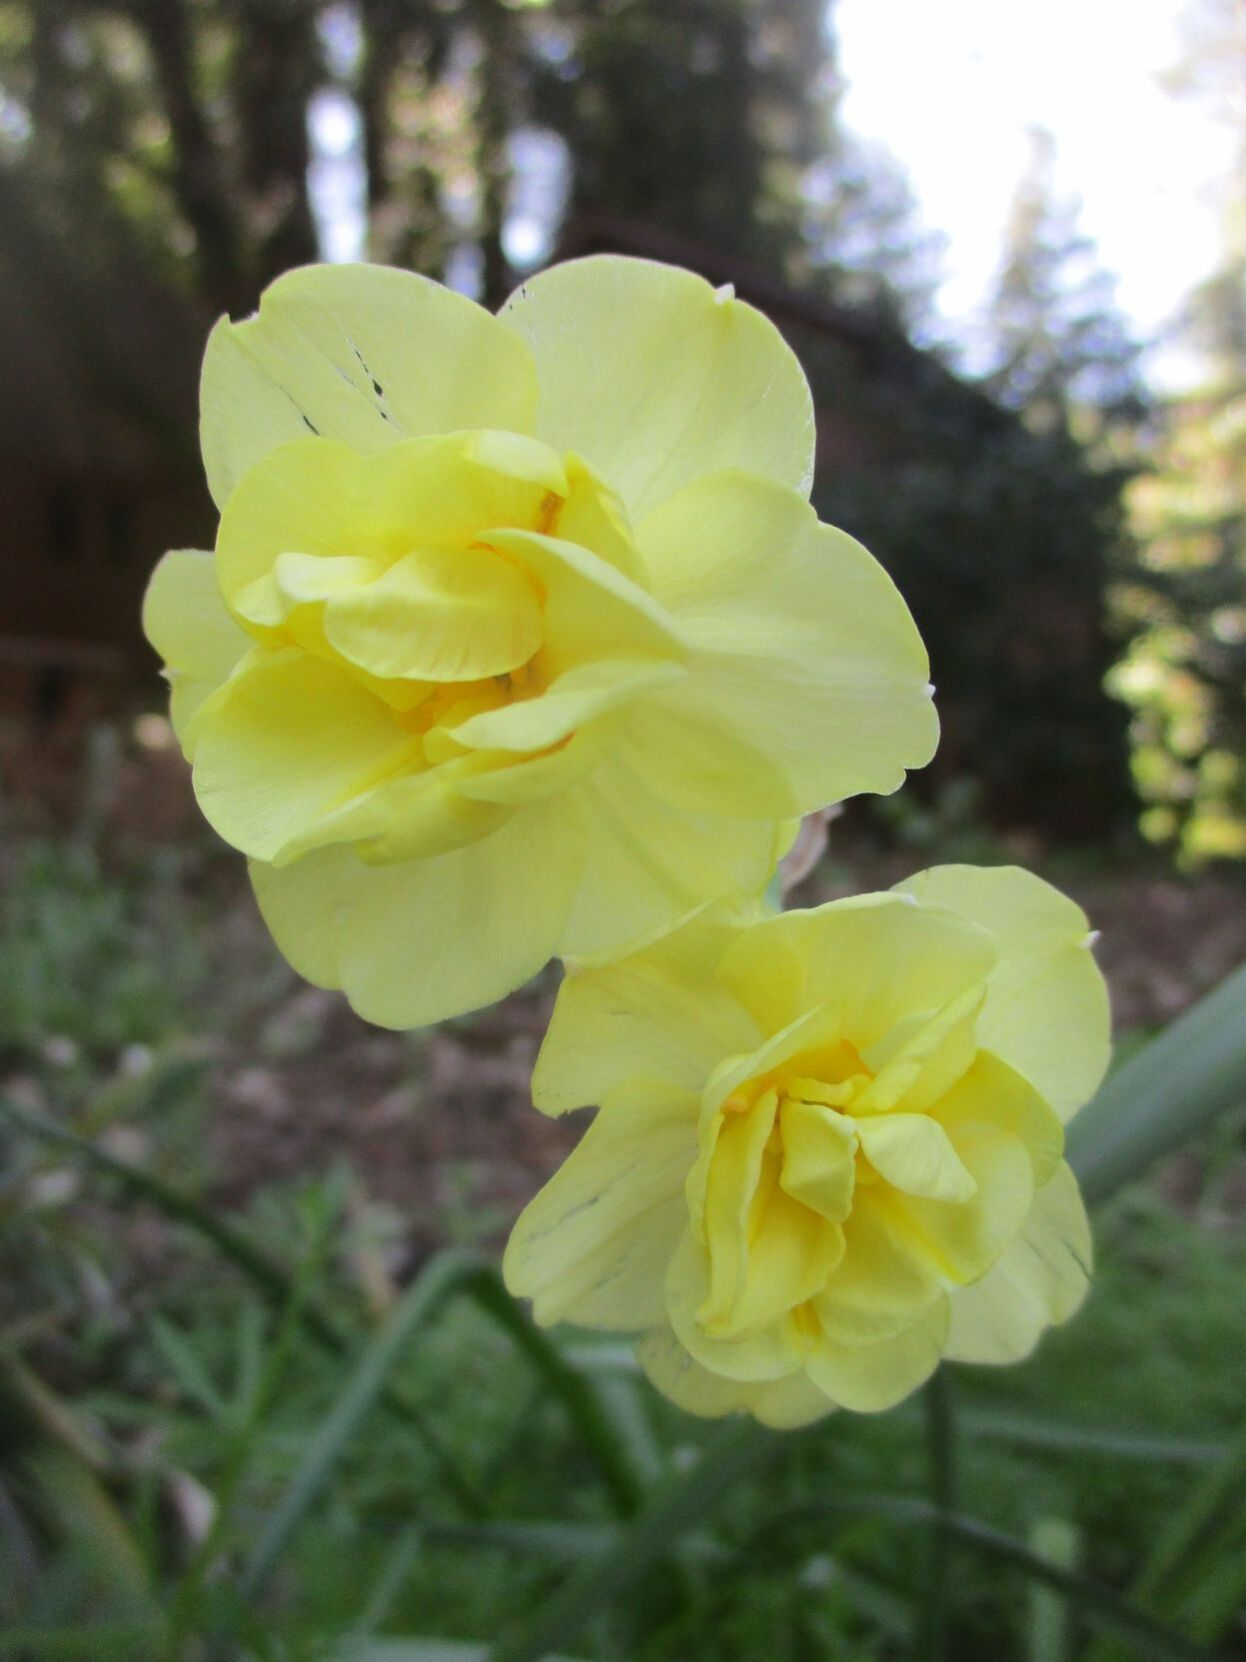 What happens when daffodils finish blooming?